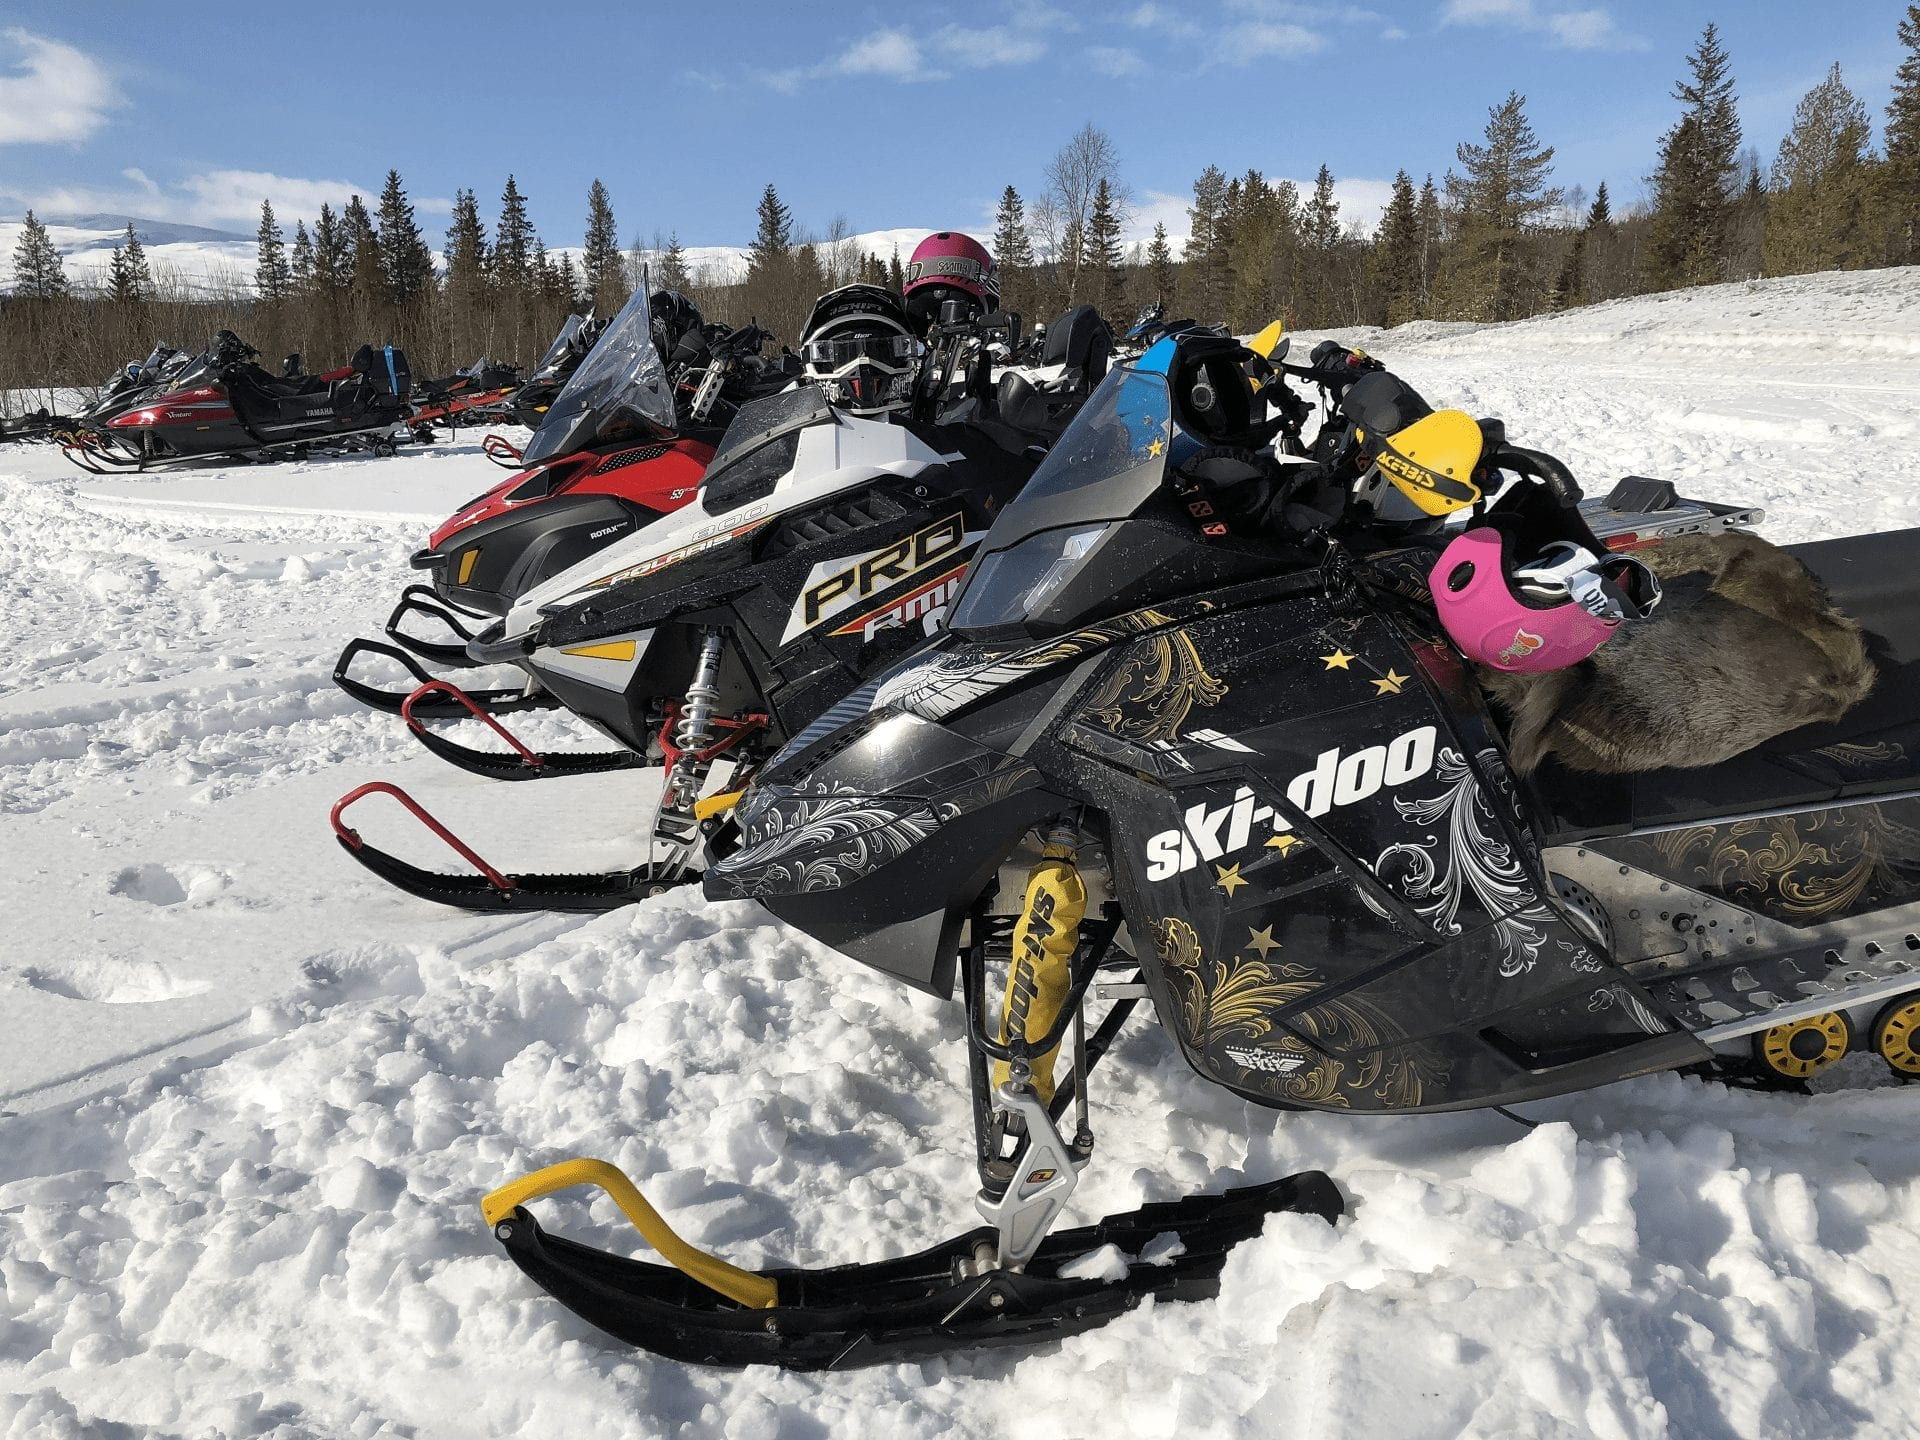 Picture of several colorful snowmobiles standing still in the snow on a sunny day.